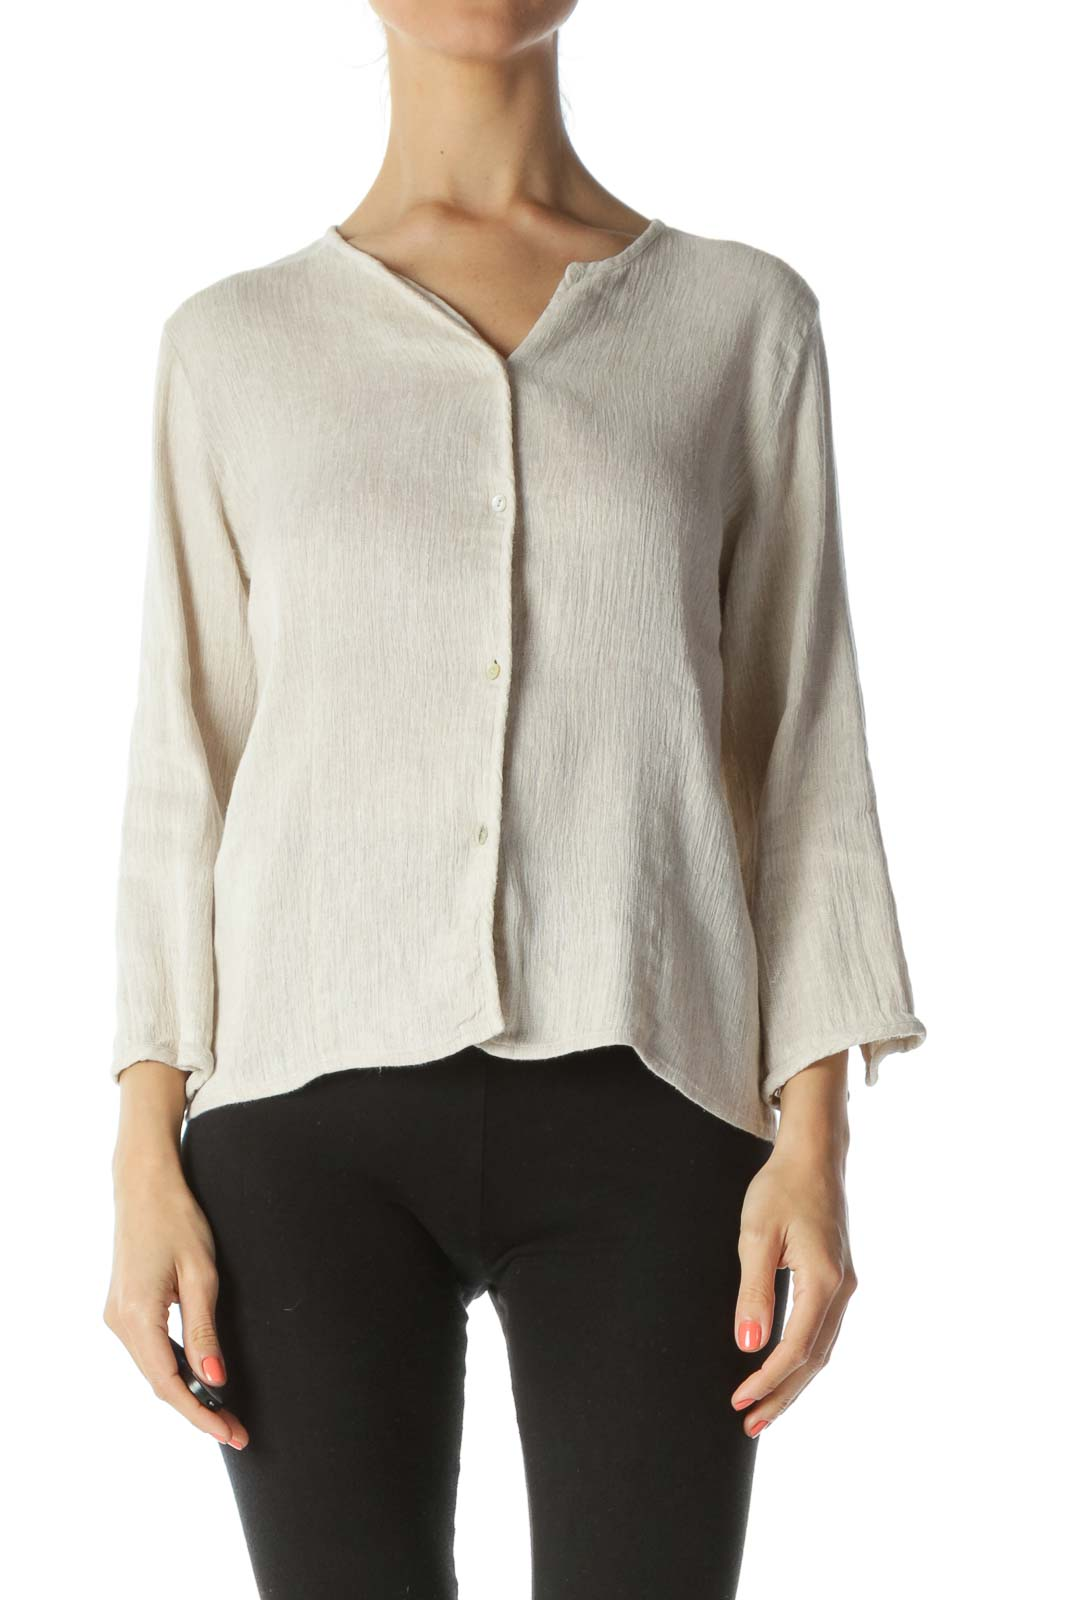 Beige Cotton Linen Textured Buttoned Light-Weight Knit Top